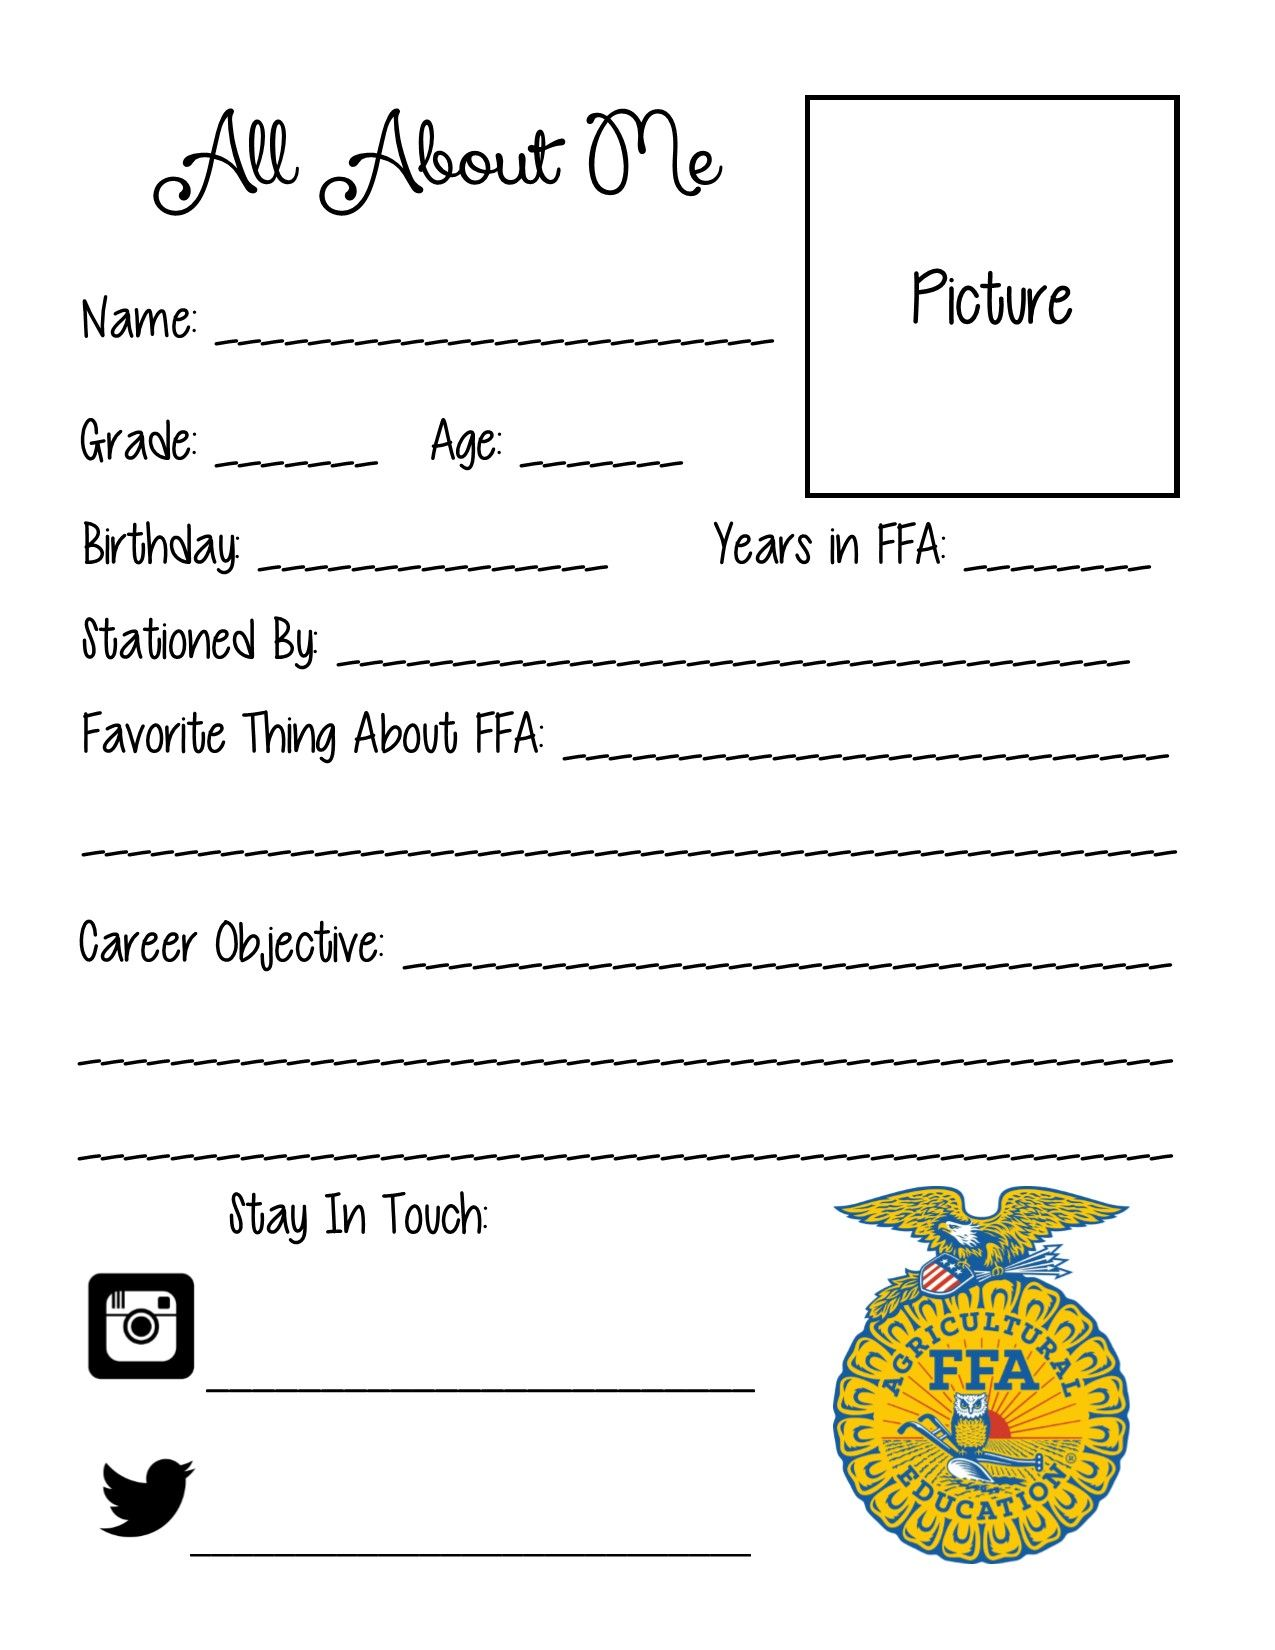 All About Me Sheet For Ffa Officers To Put In Classrooms